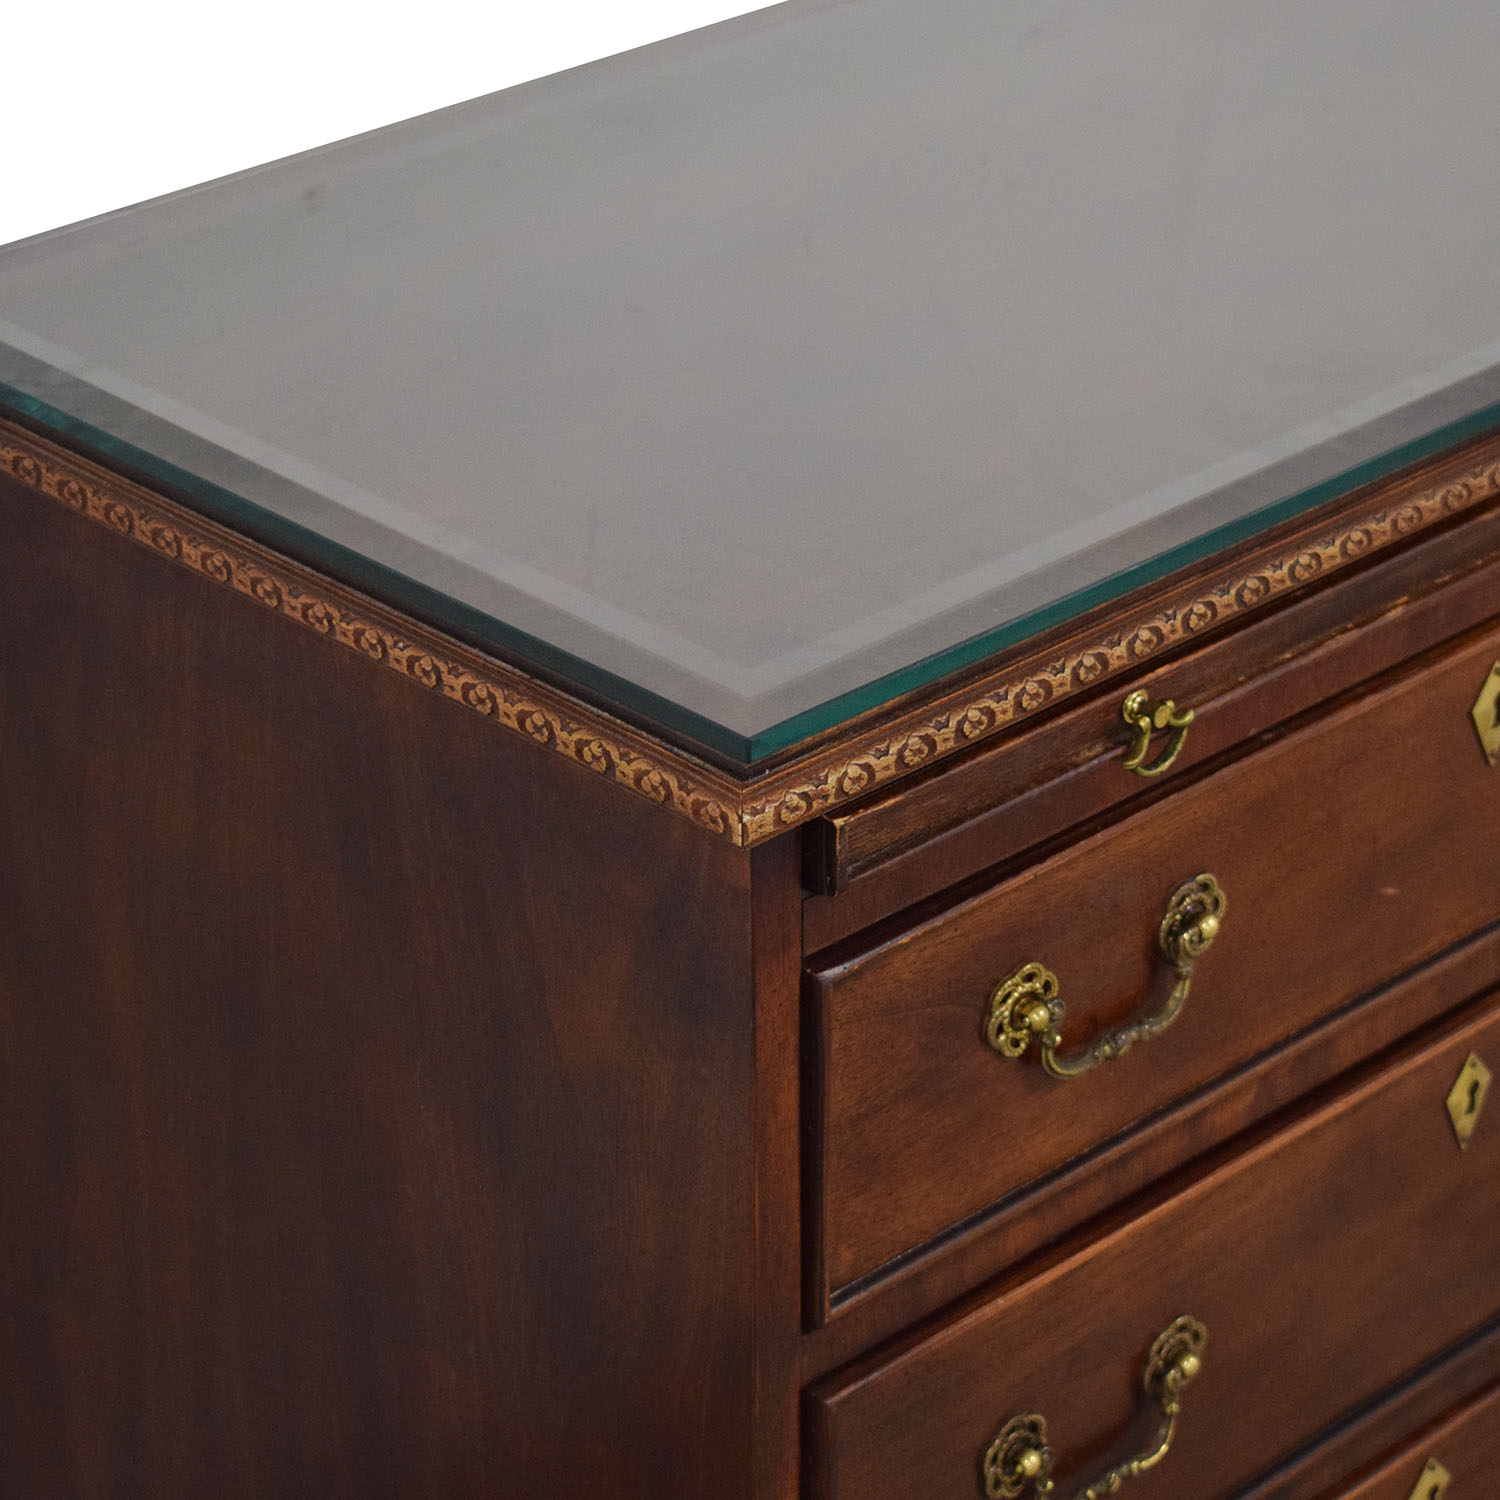 Century Furniture Century Furniture Chest of Drawers brown